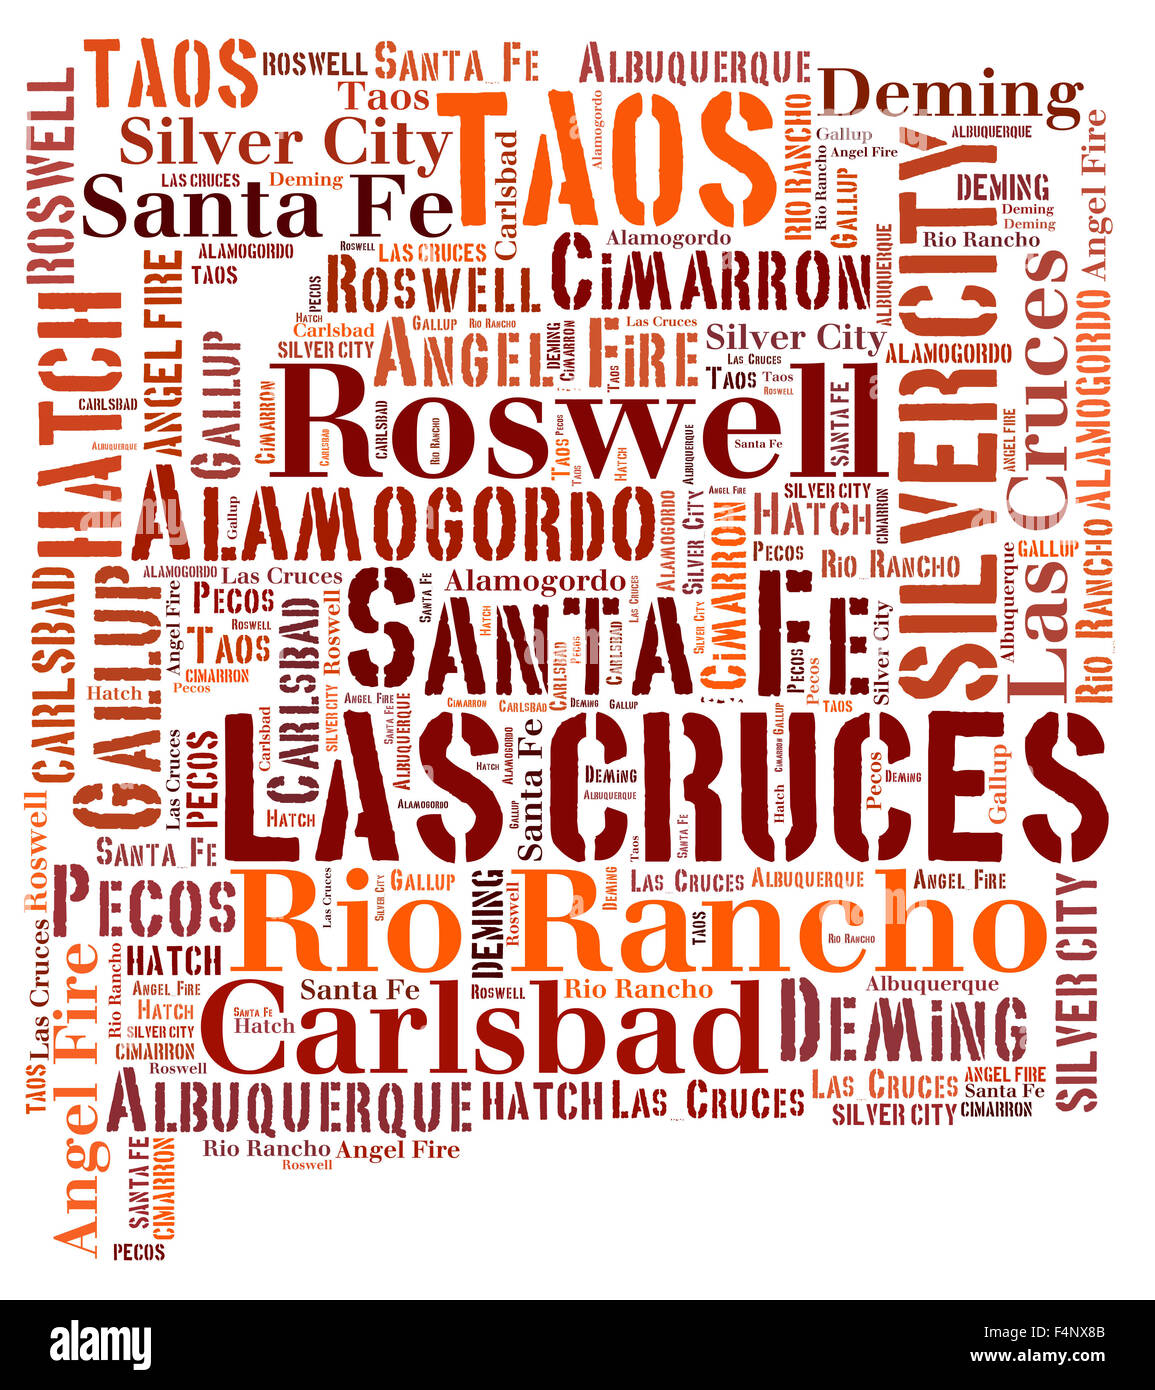 Word Cloud in the shape of New Mexico showing some of the cities in the state - Stock Image